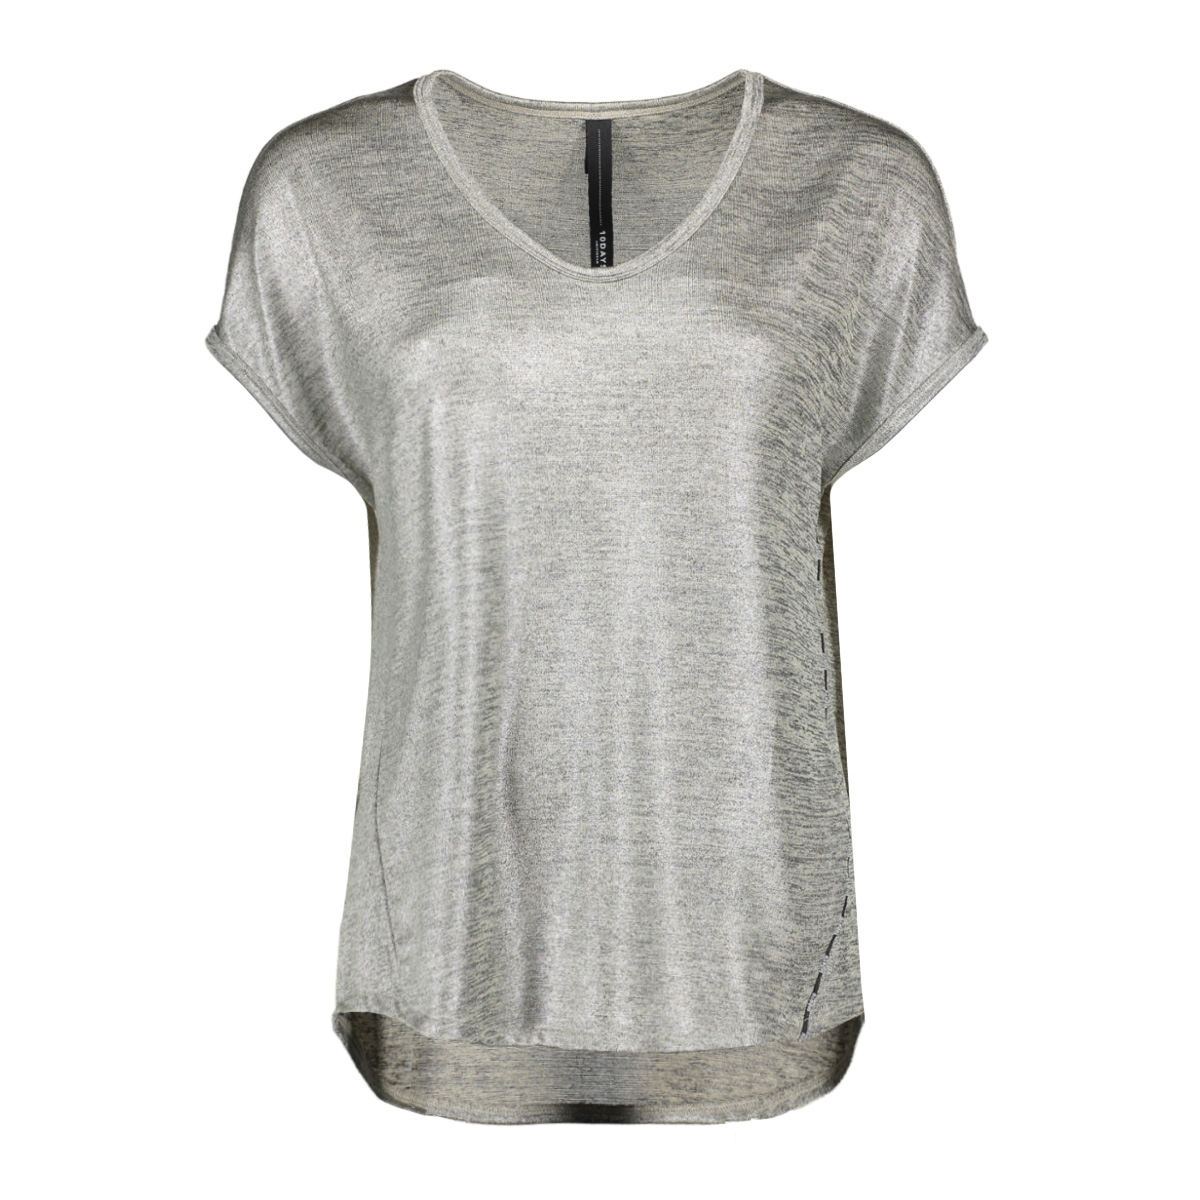 the foil tee 20 745 0203 10 days t-shirt 1015 silver